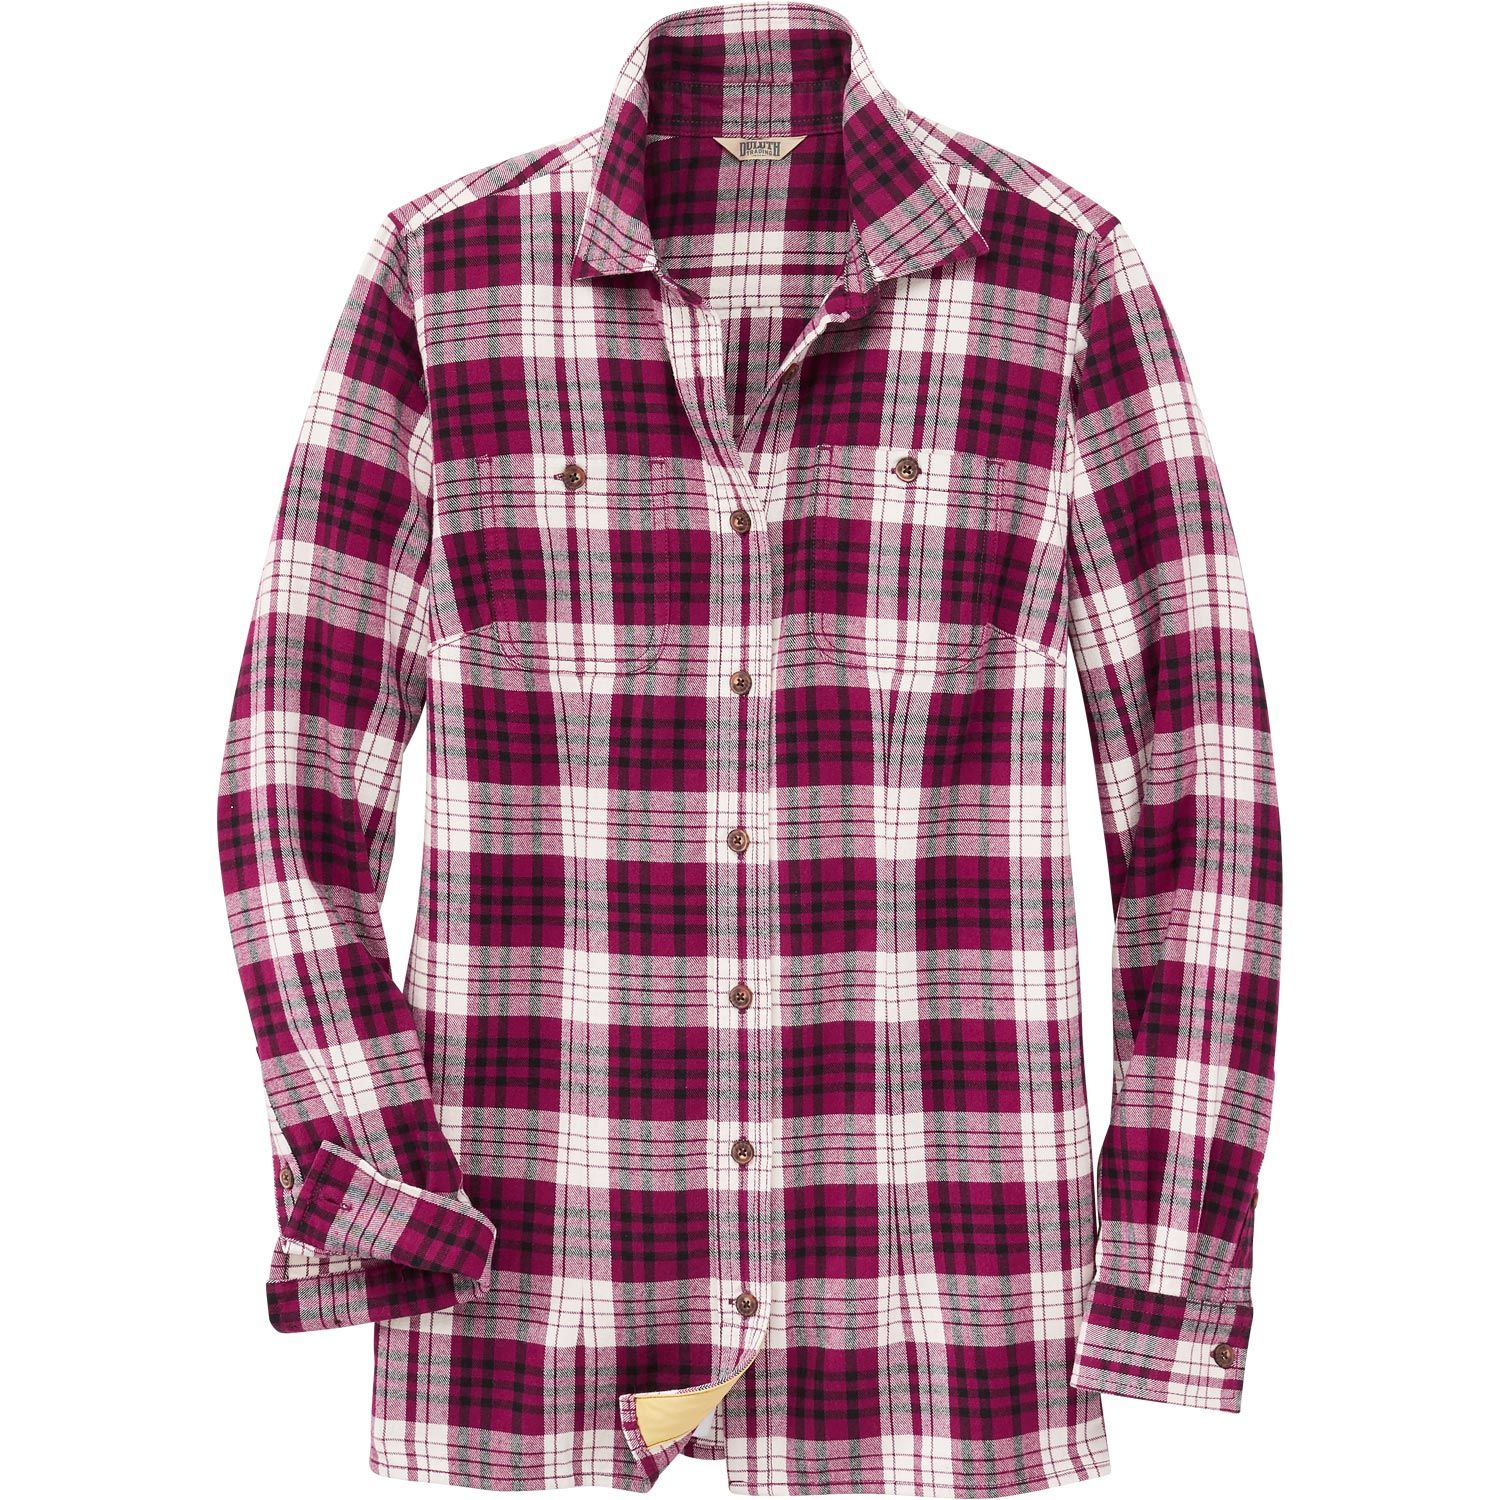 Flannel shirts to get the trendier look for women